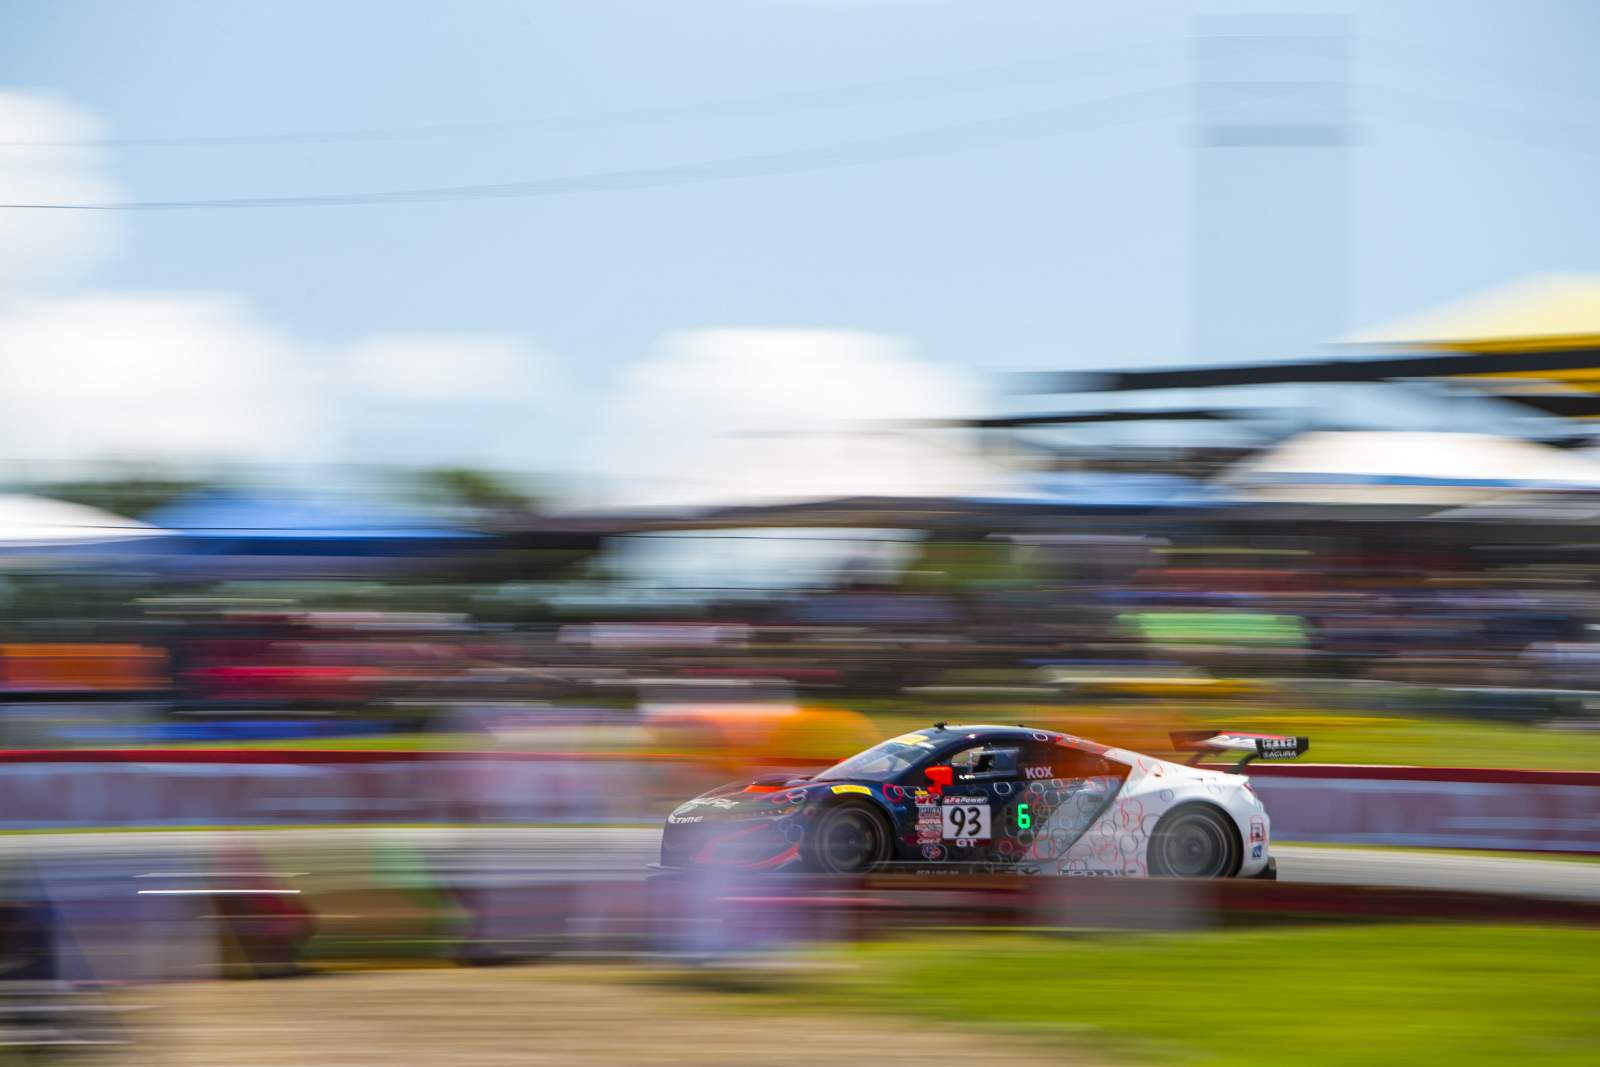 peter-kox-realtime-racing-pirelli-world-challenge-mid-ohio-121